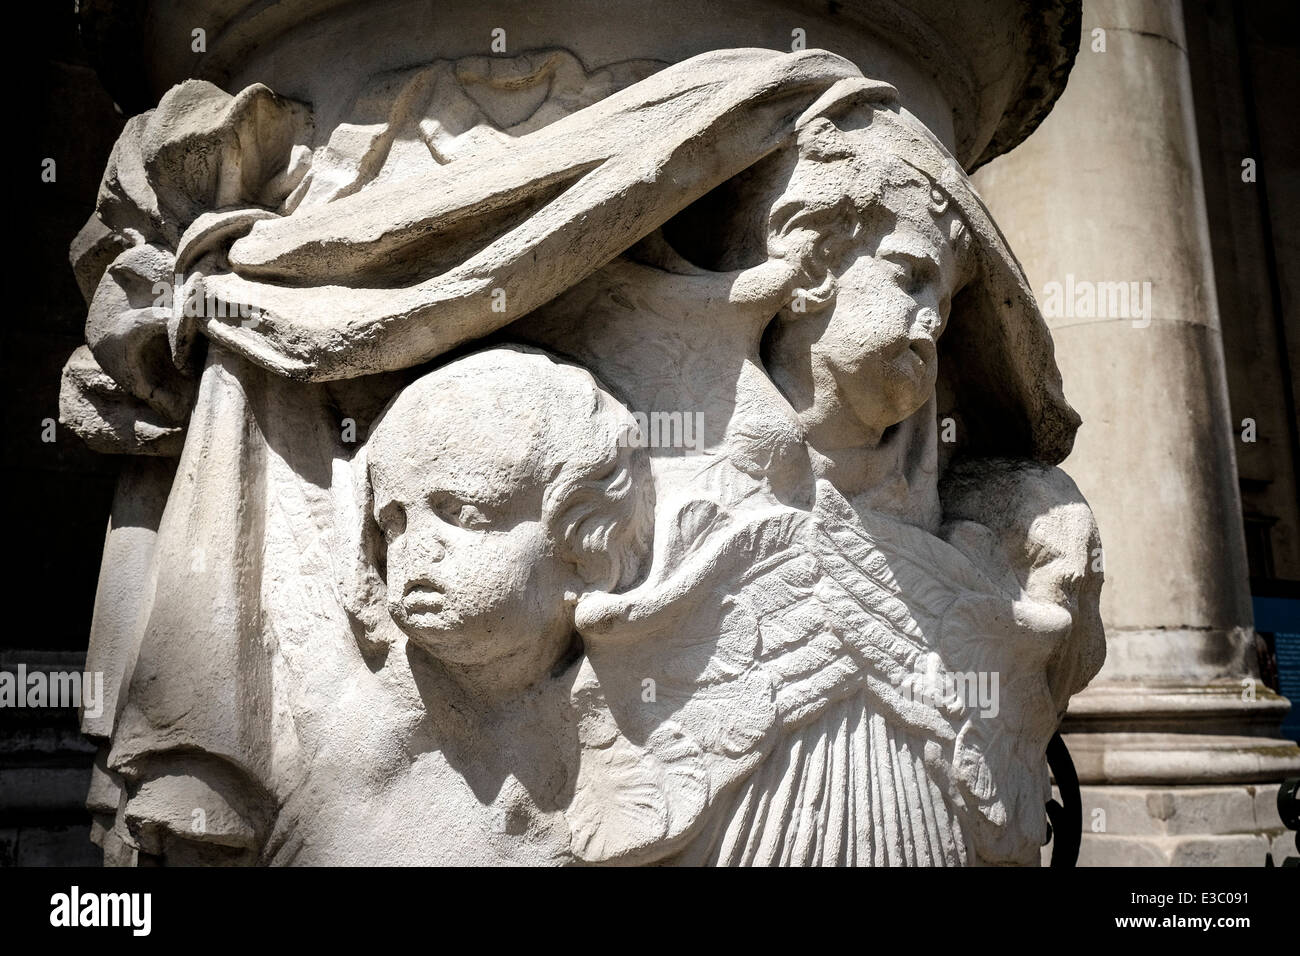 The effects of weathering showing on the eroded stone carvings at St Alfeges Church. - Stock Image